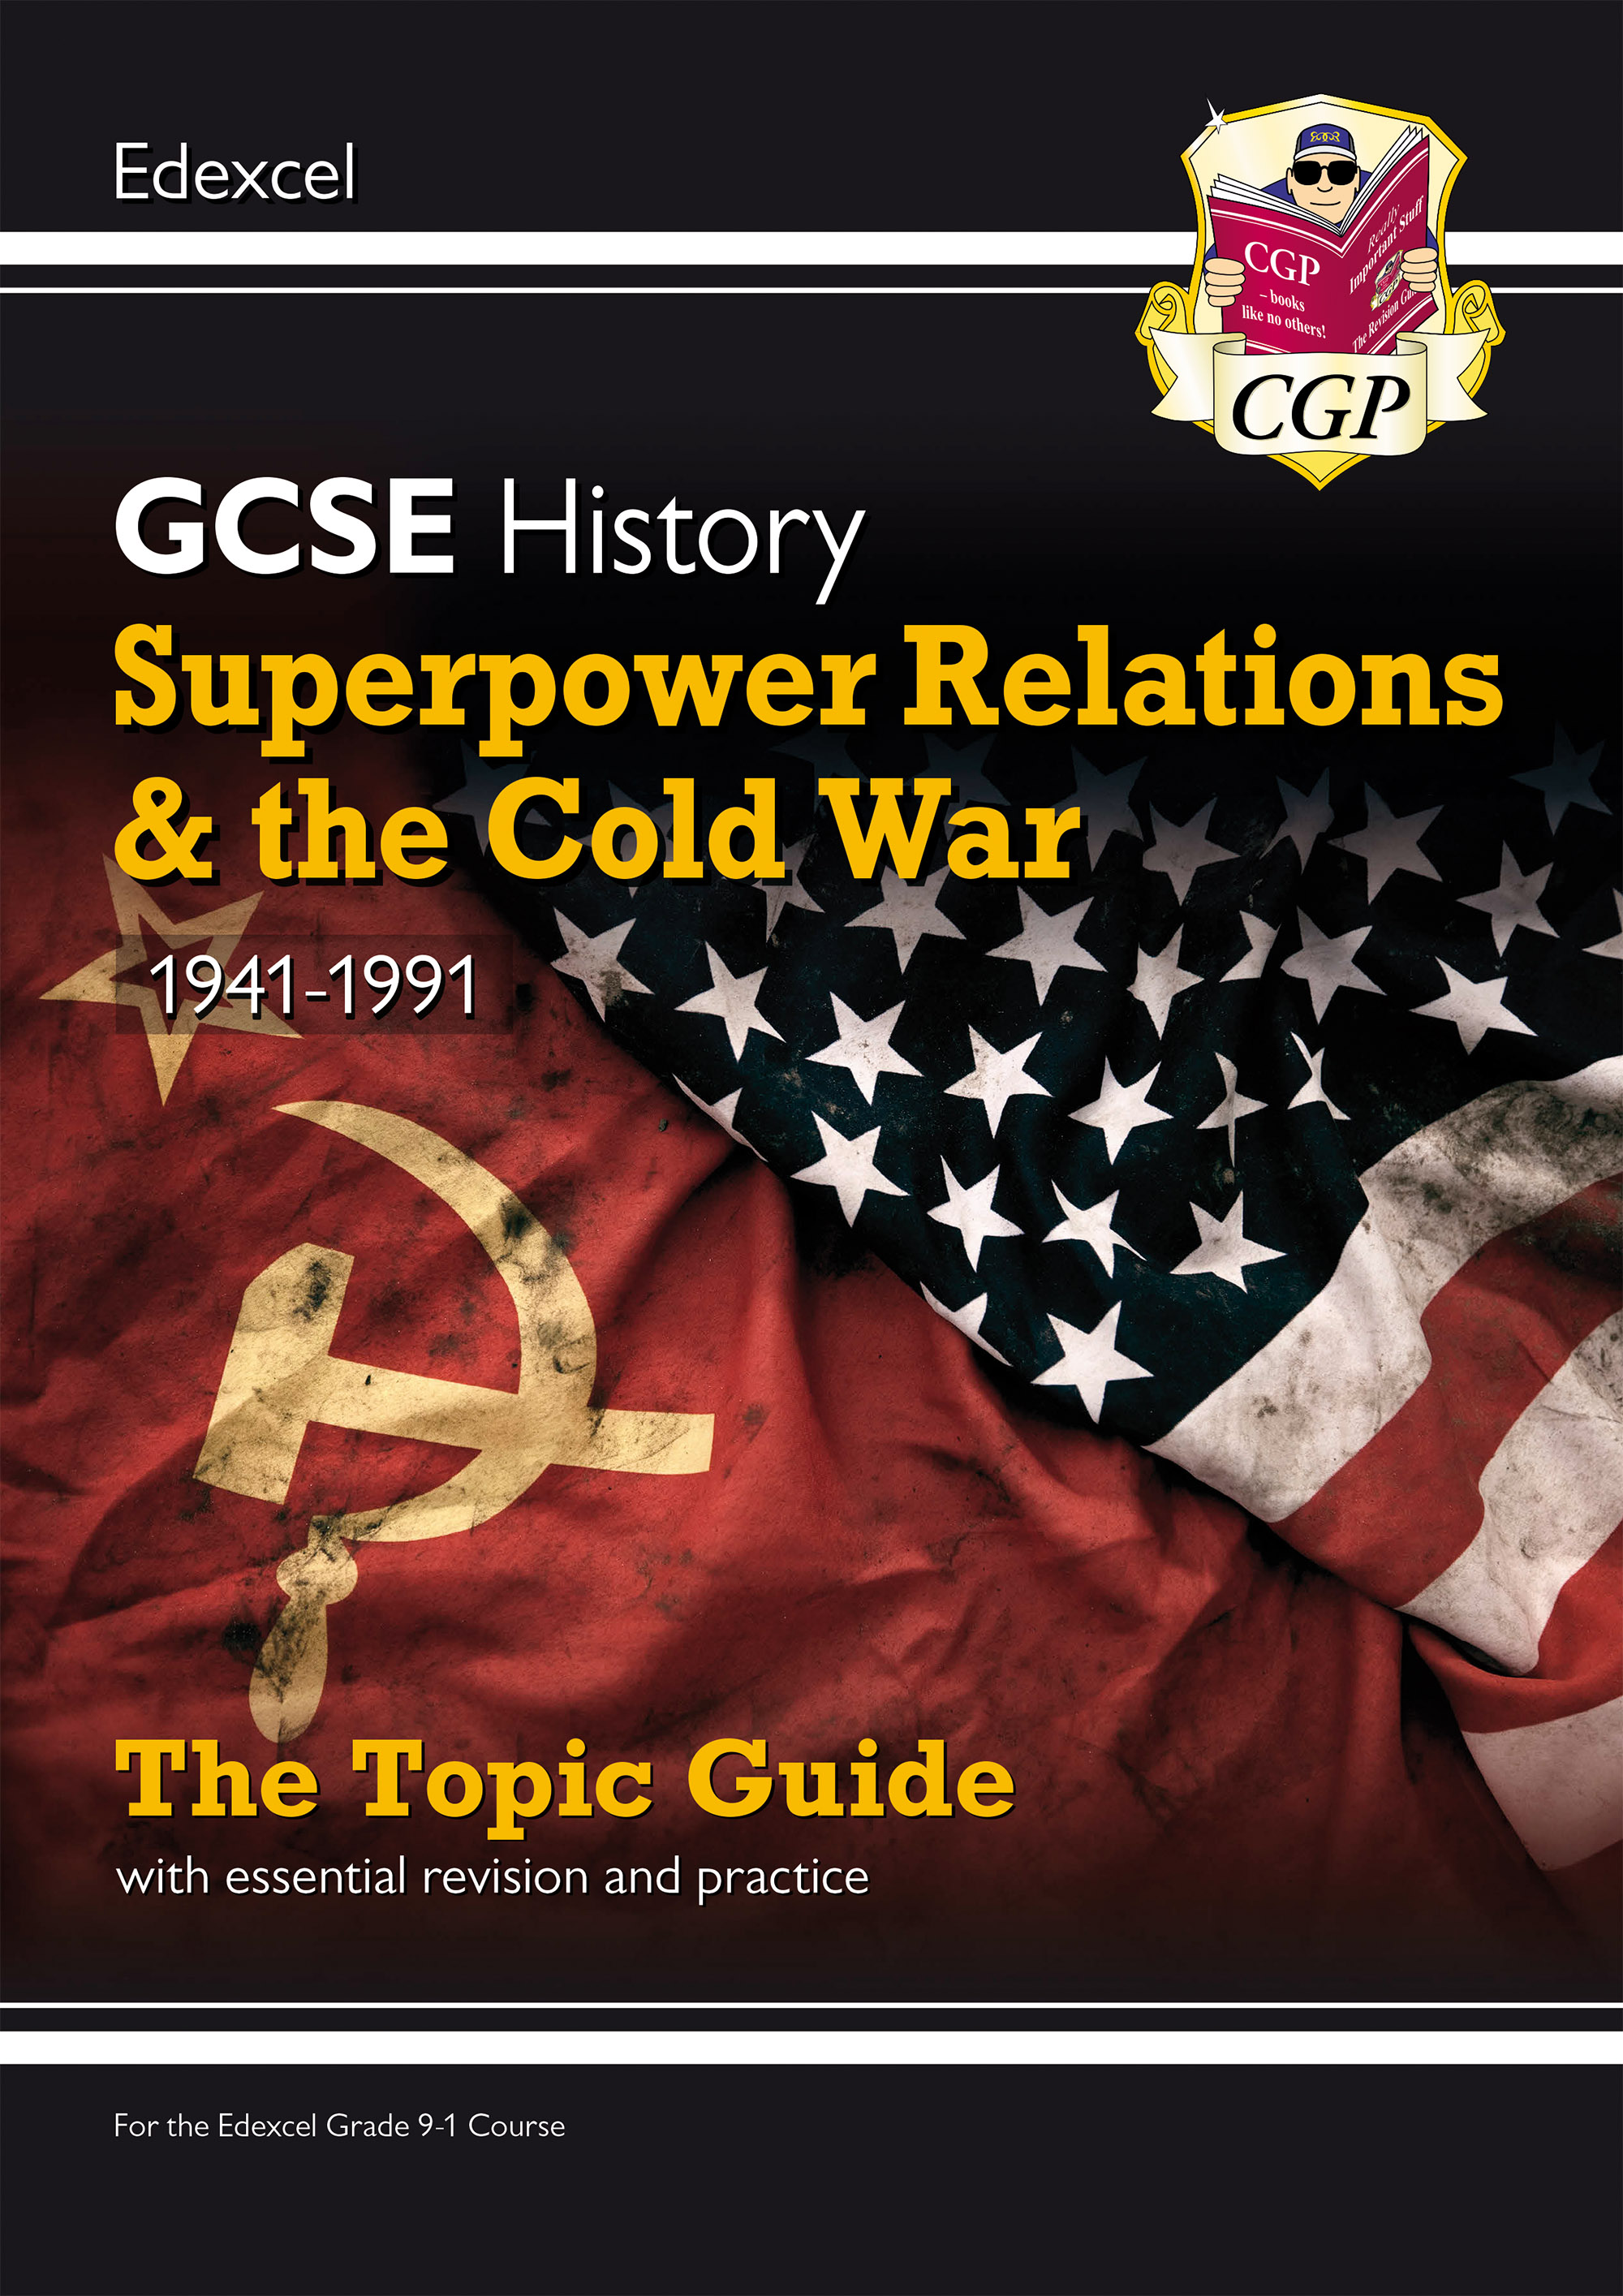 HECWO41D - Grade 9-1 GCSE History Edexcel Topic Guide - Superpower Relations & the Cold War, 1941-91